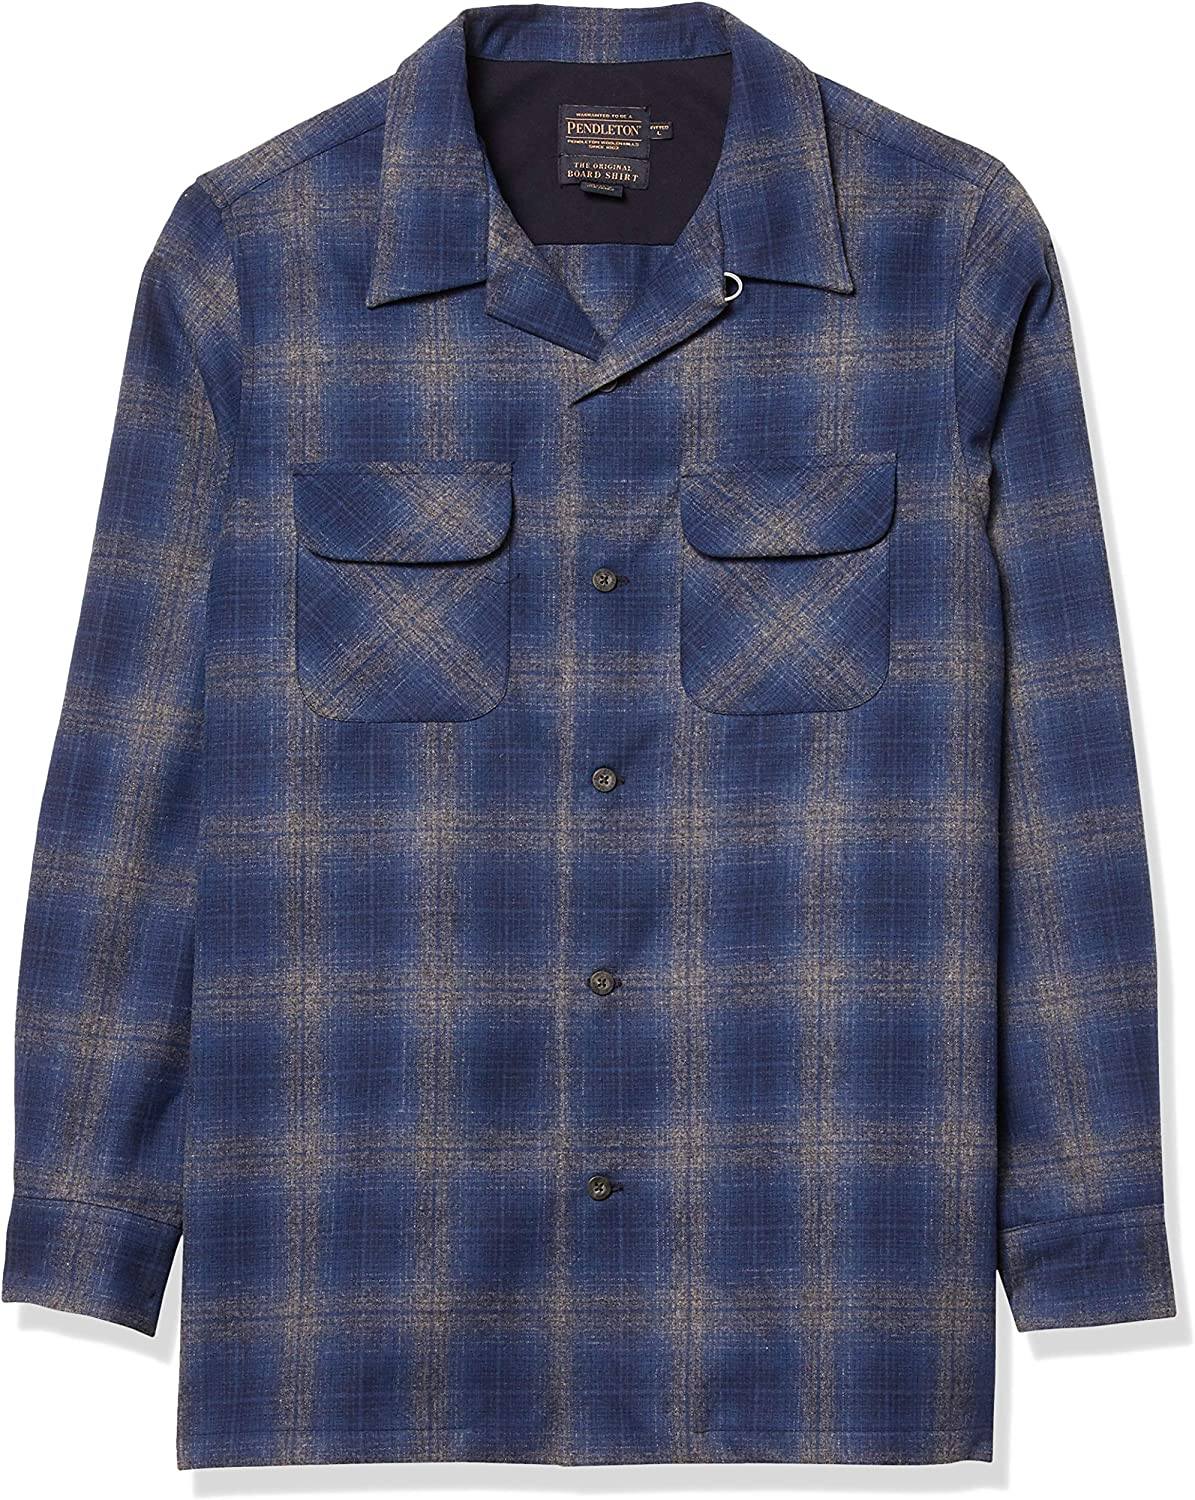 Pendleton, Men's Long Sleeve Fitted Board Shirt